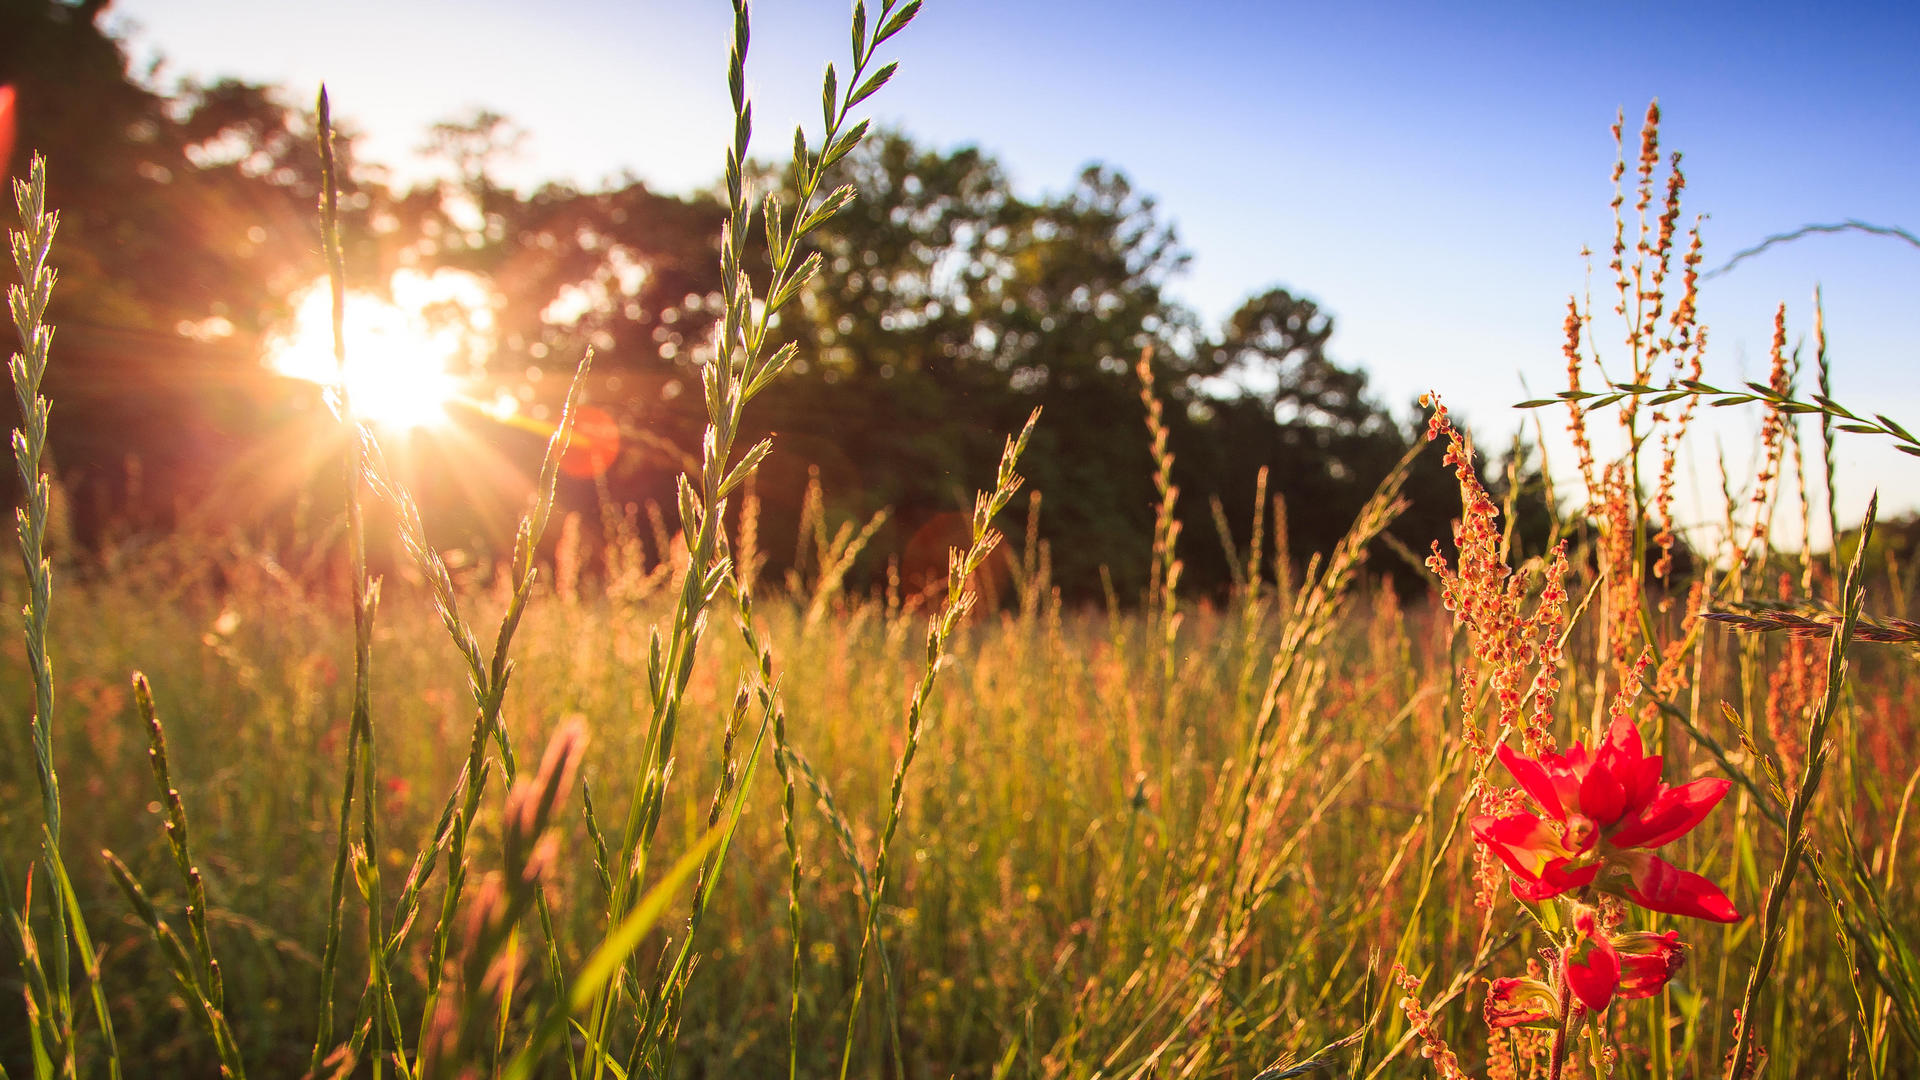 sun shining on tall grass with red flower